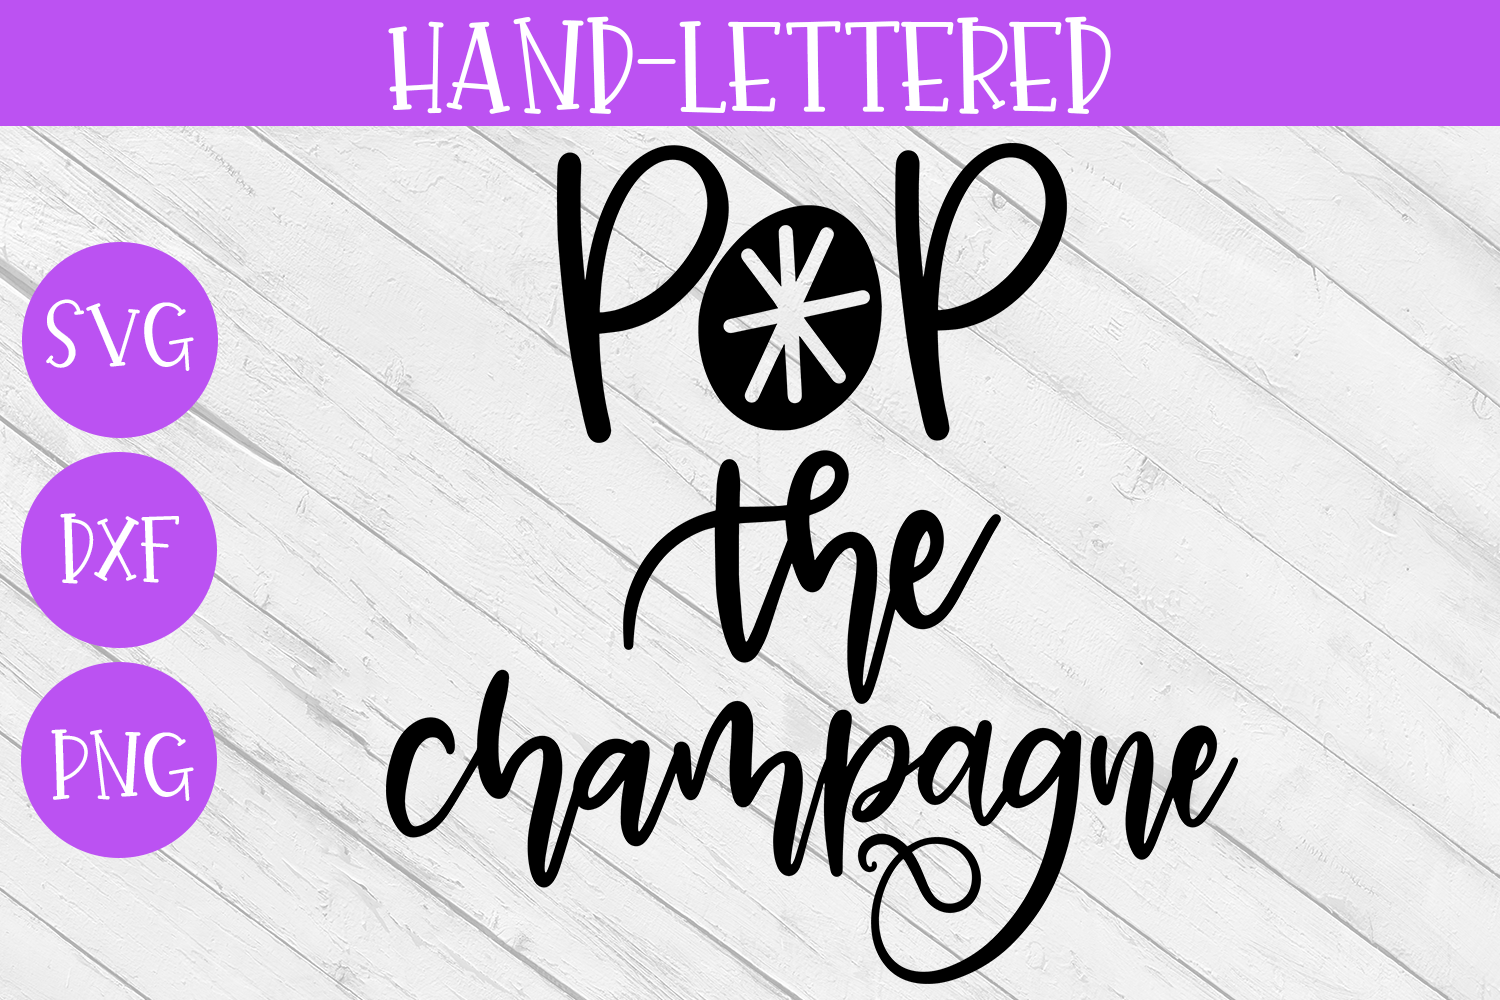 New Year SVG - Pop the Champagne Hand-Lettered Cut File example image 2